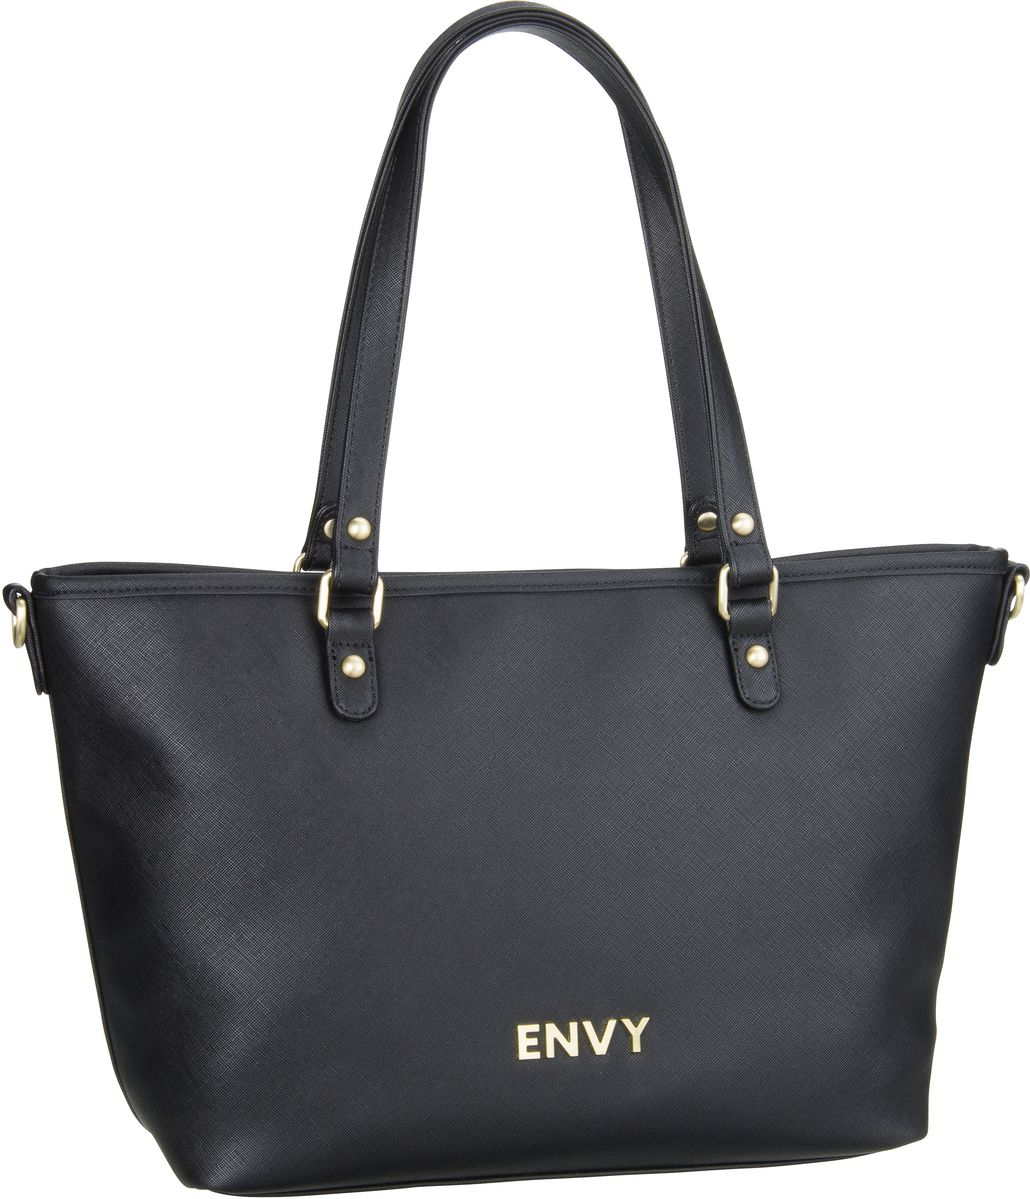 House of Envy Classy Shopper Black - Handtasche